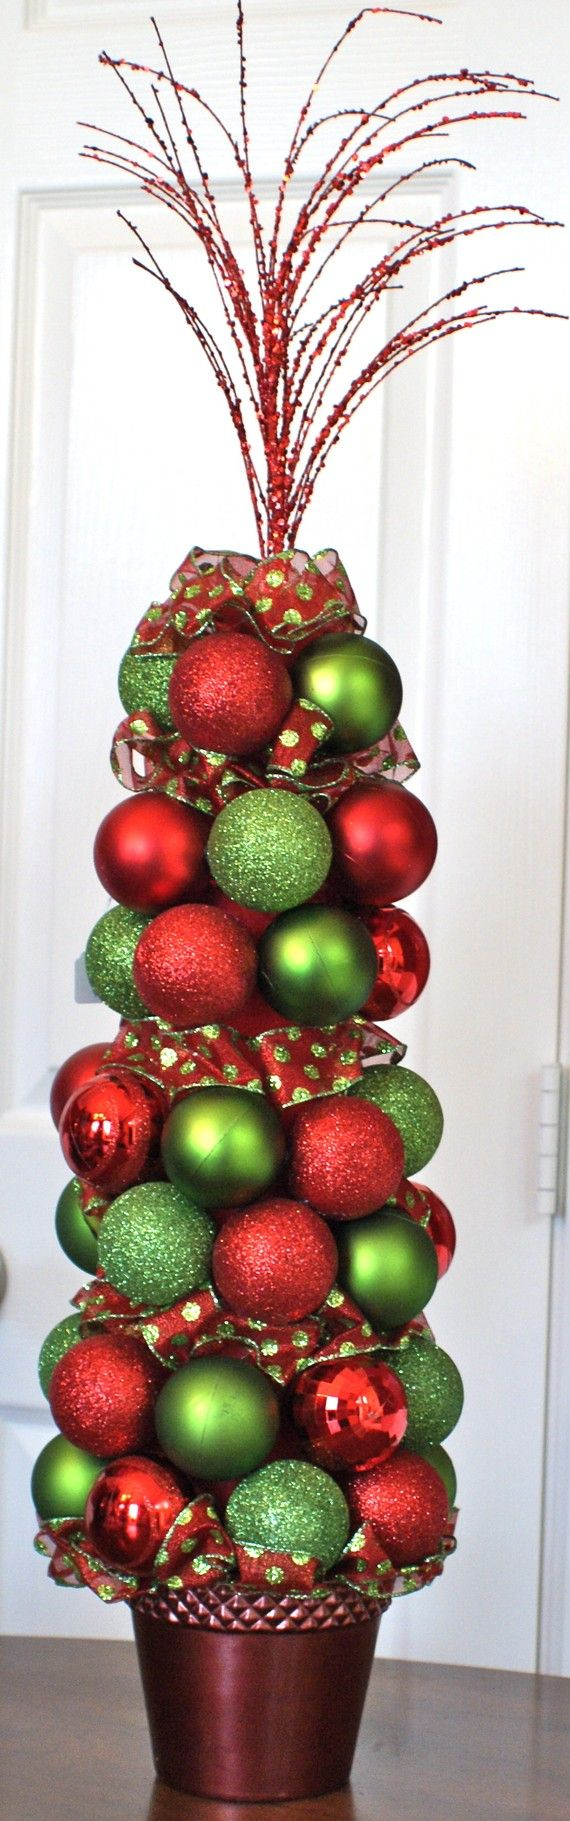 Ornament Topiary For Christmas Christmas Pinterest